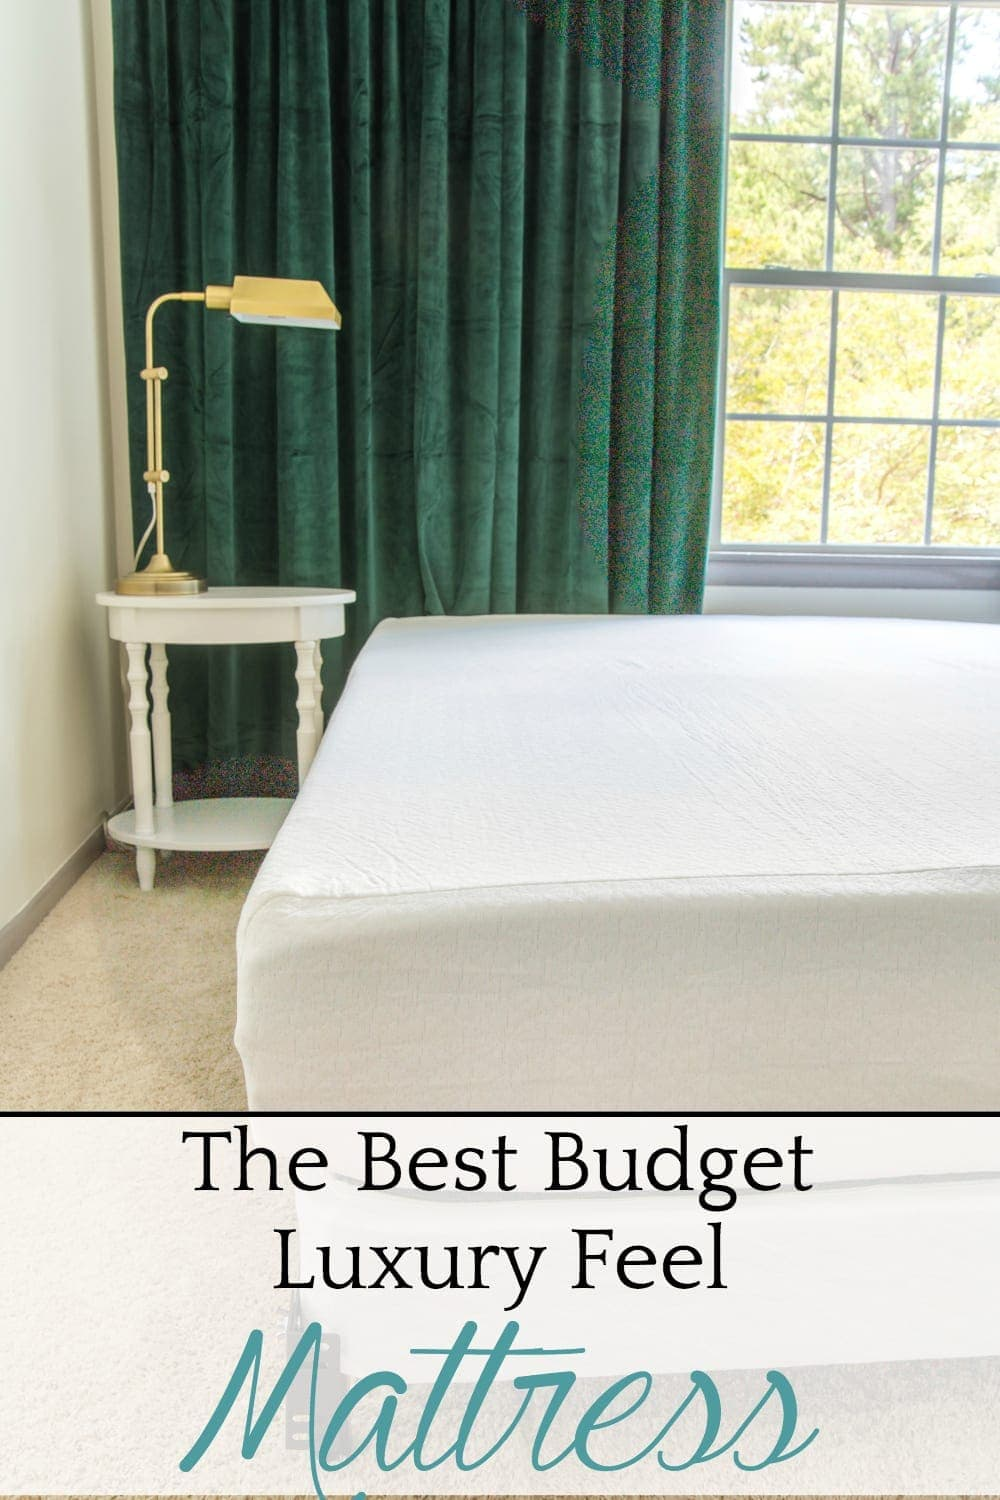 The Best Budget Luxury-Feel Mattress | Three mattresses, three different price points, and how they compare to find a luxury feeling mattress that doesn't break the bank.